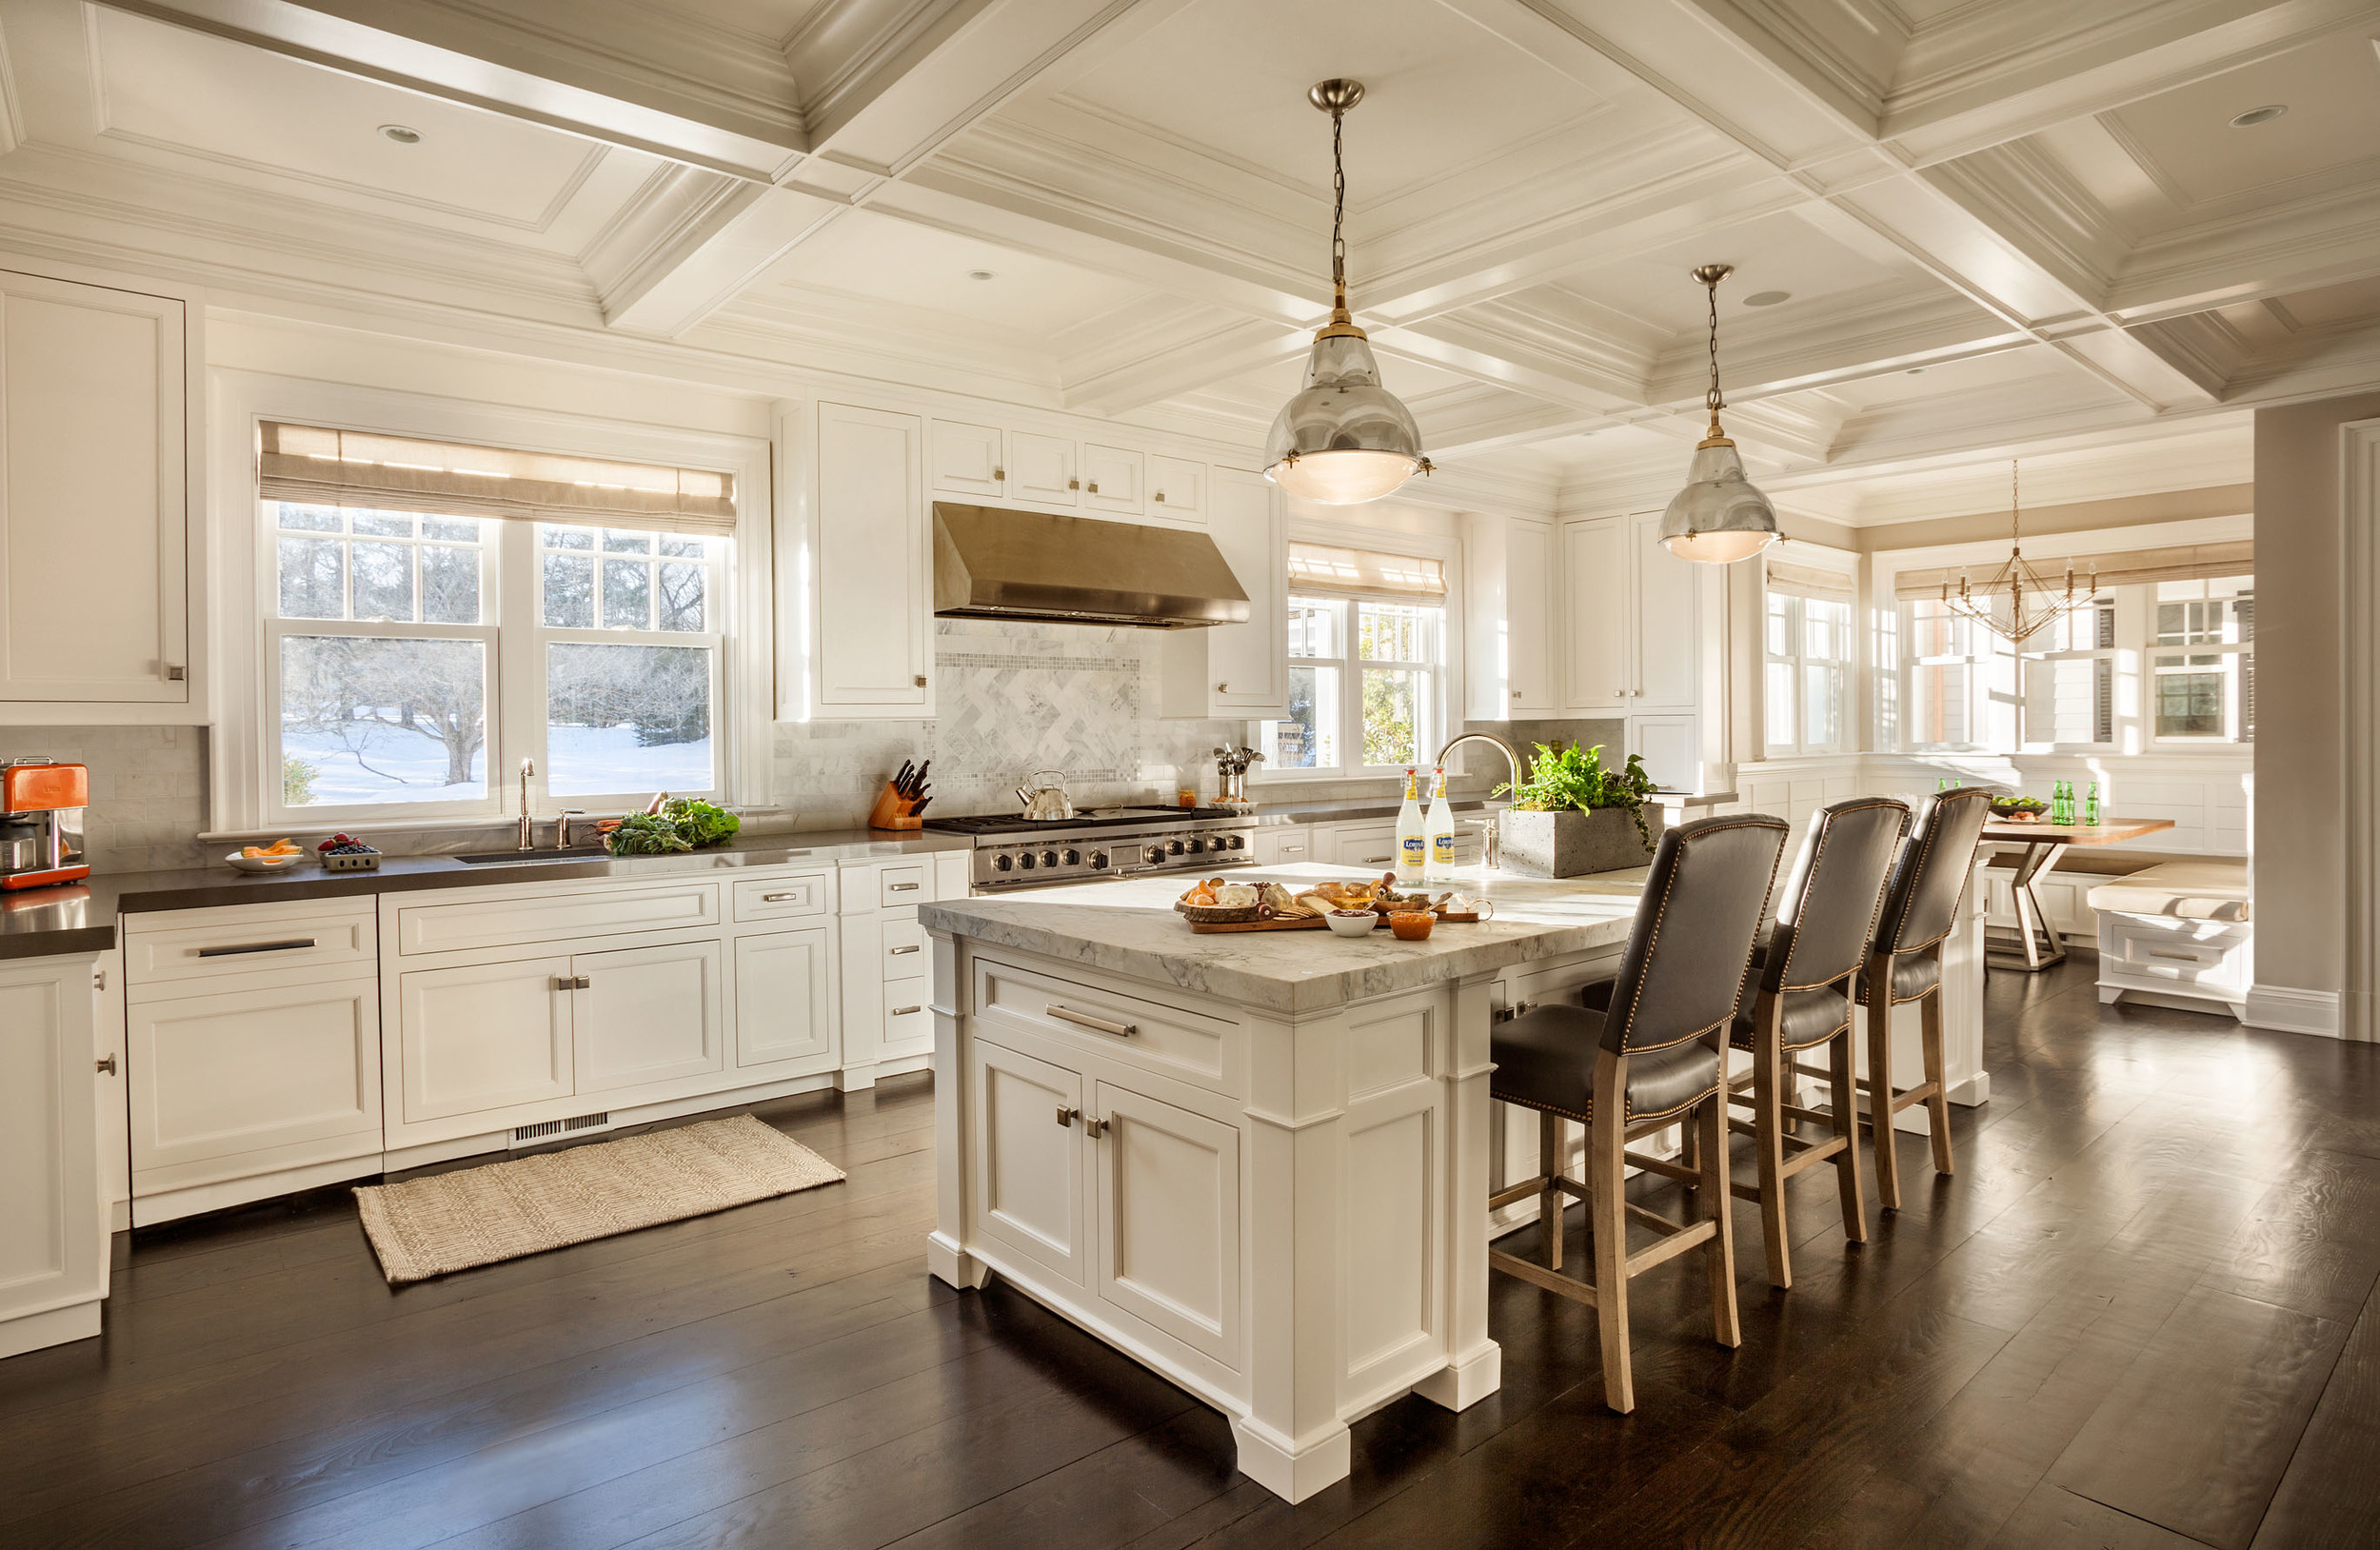 luxurious white kitchen interiors, spacious bright kitchen design, inspiration for gorgeous traditional white kitchens